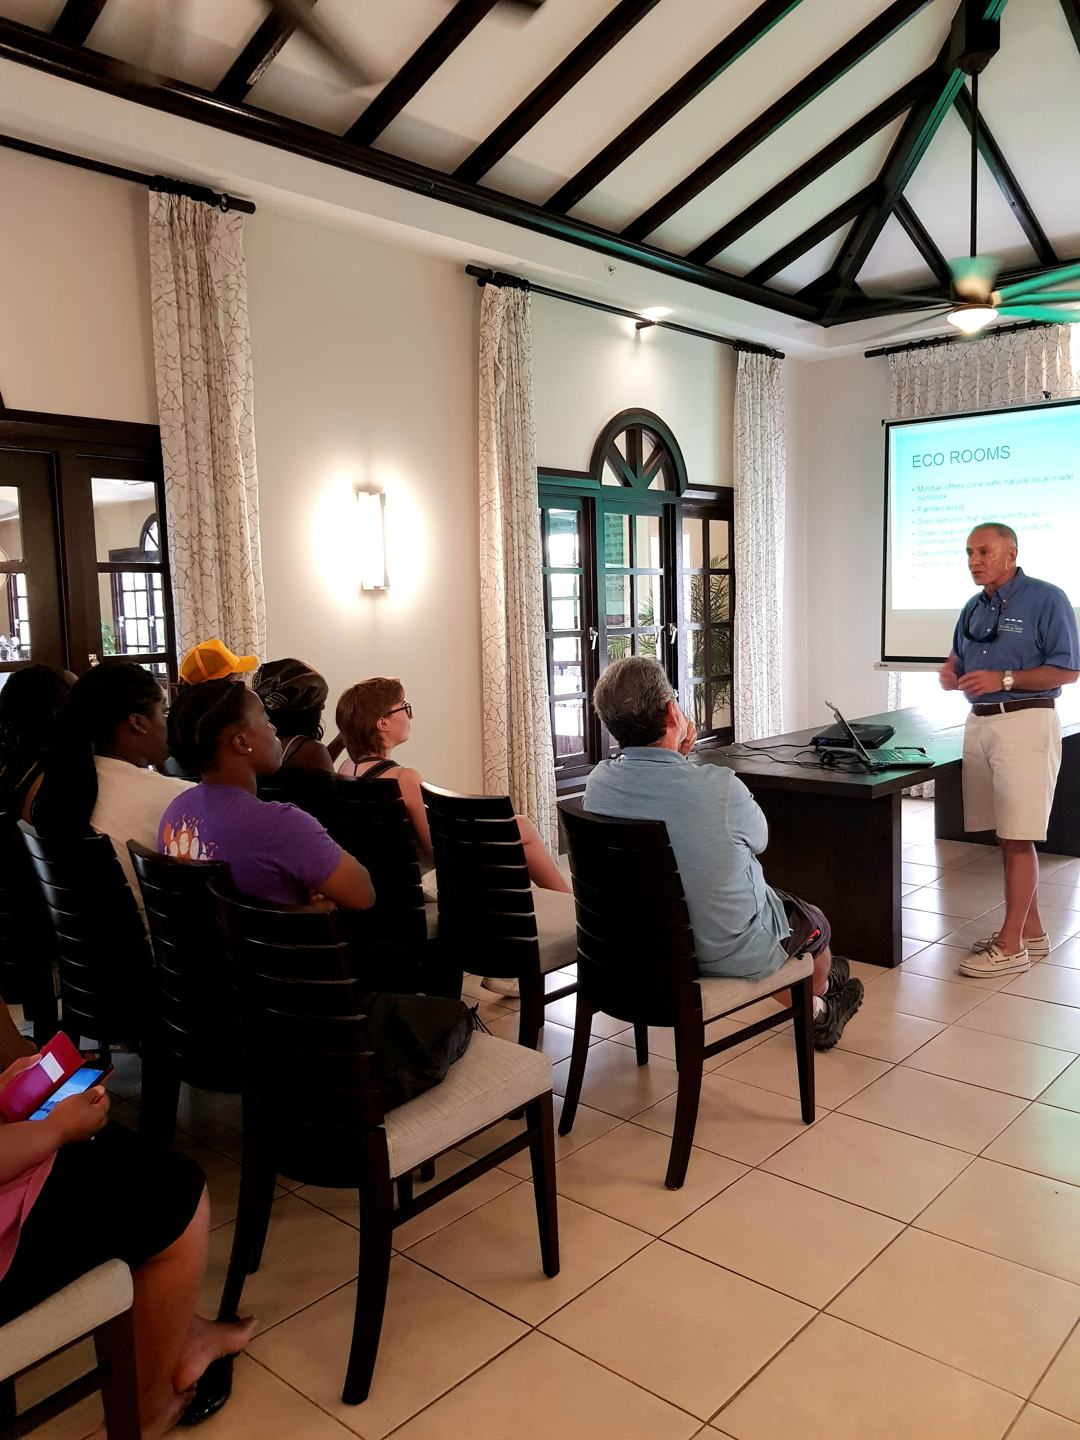 Professors and students of Mercer University in Georgia, U.S., learn sustainability best practices within the business setting from Ewald Biemans, owner/CEO of Bucuti & Tara Beach Resort and noted environmentalist